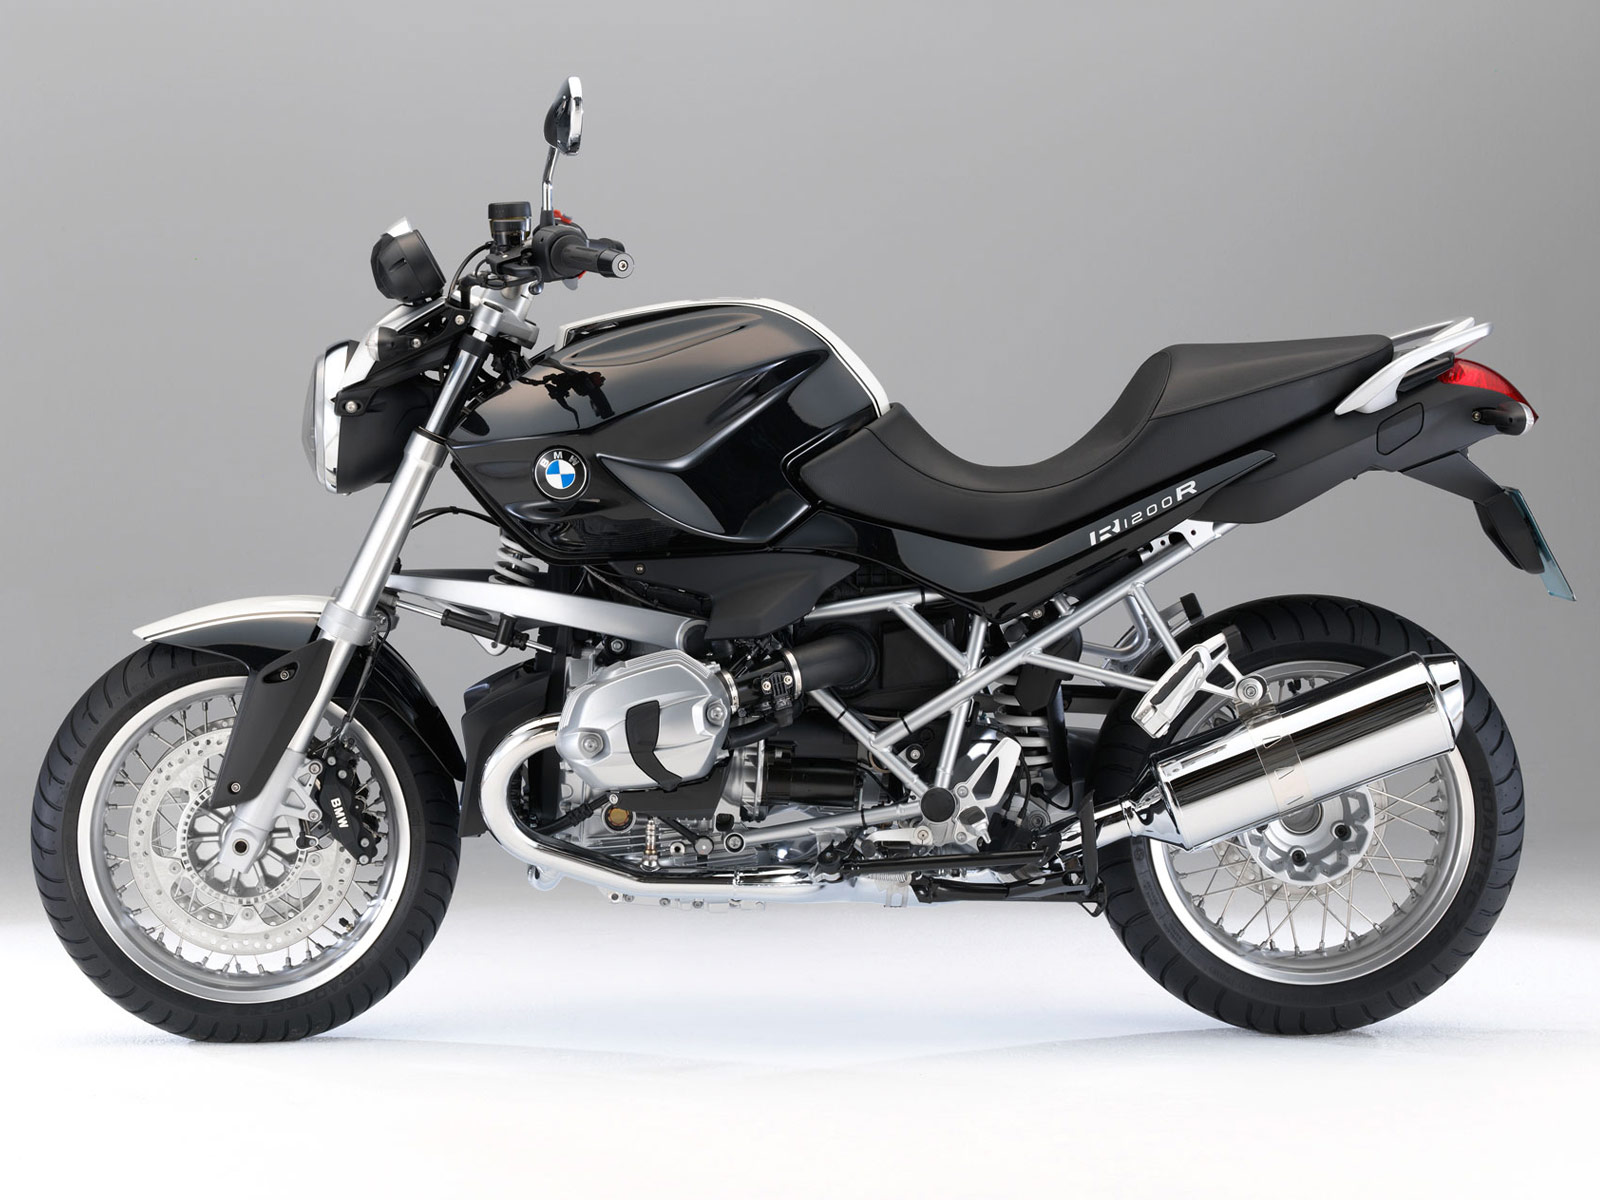 2012 bmw r1200r motorcycle insurance information. Black Bedroom Furniture Sets. Home Design Ideas